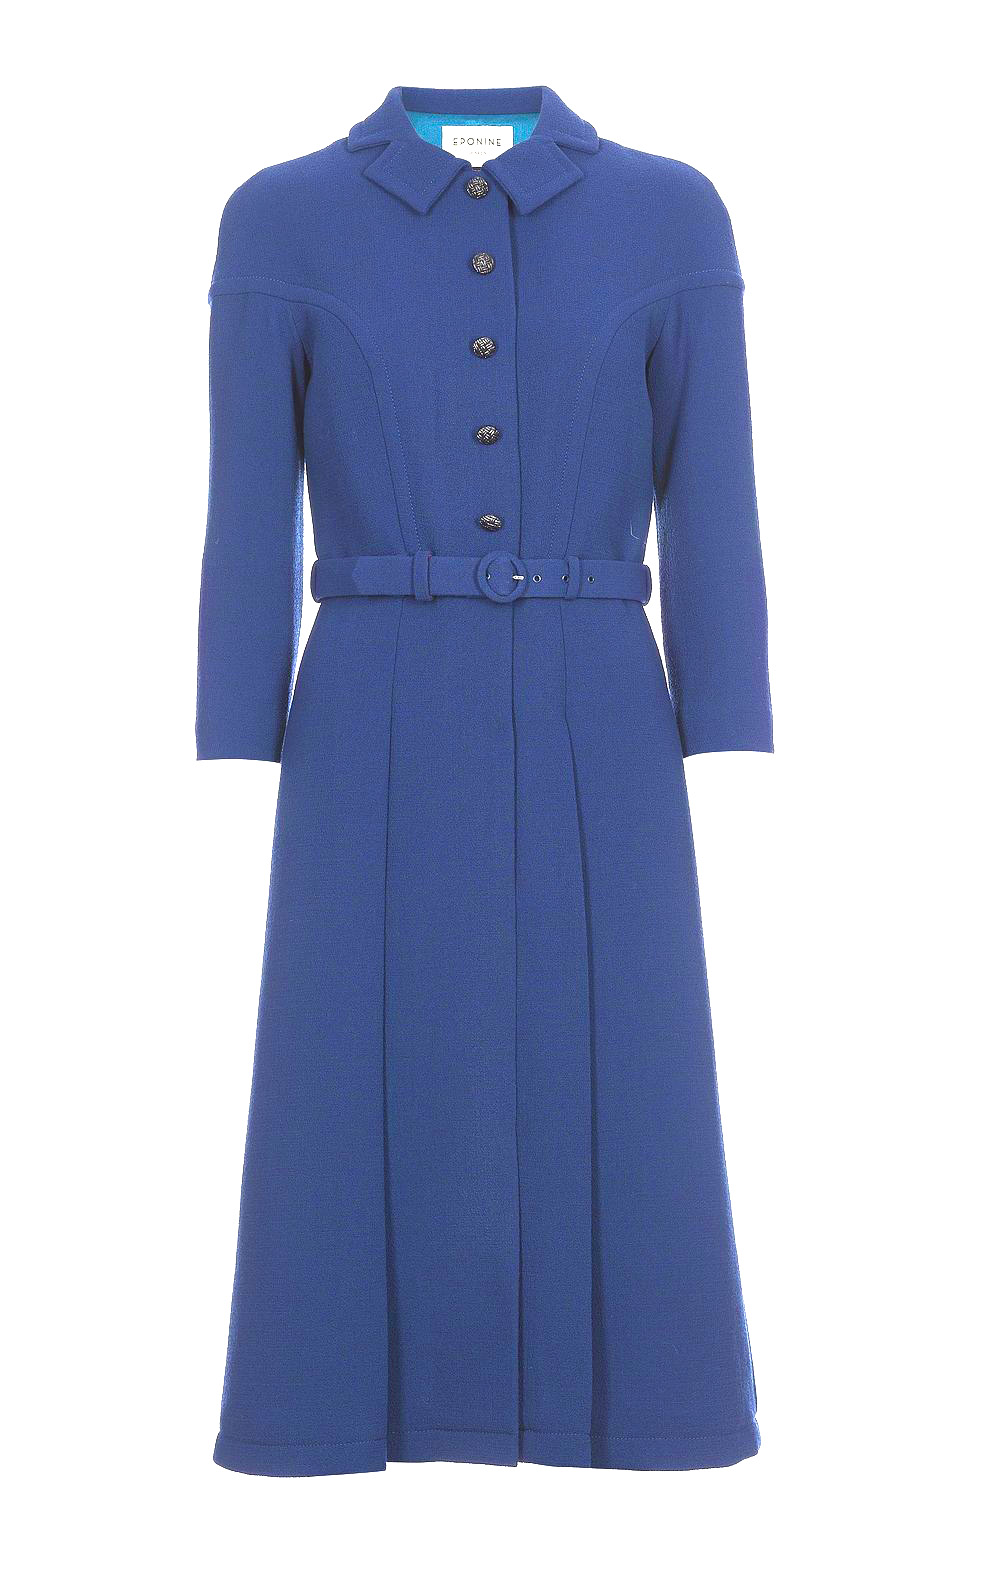 Eponine Blue Coat Dress · Kate Middleton Style Blog